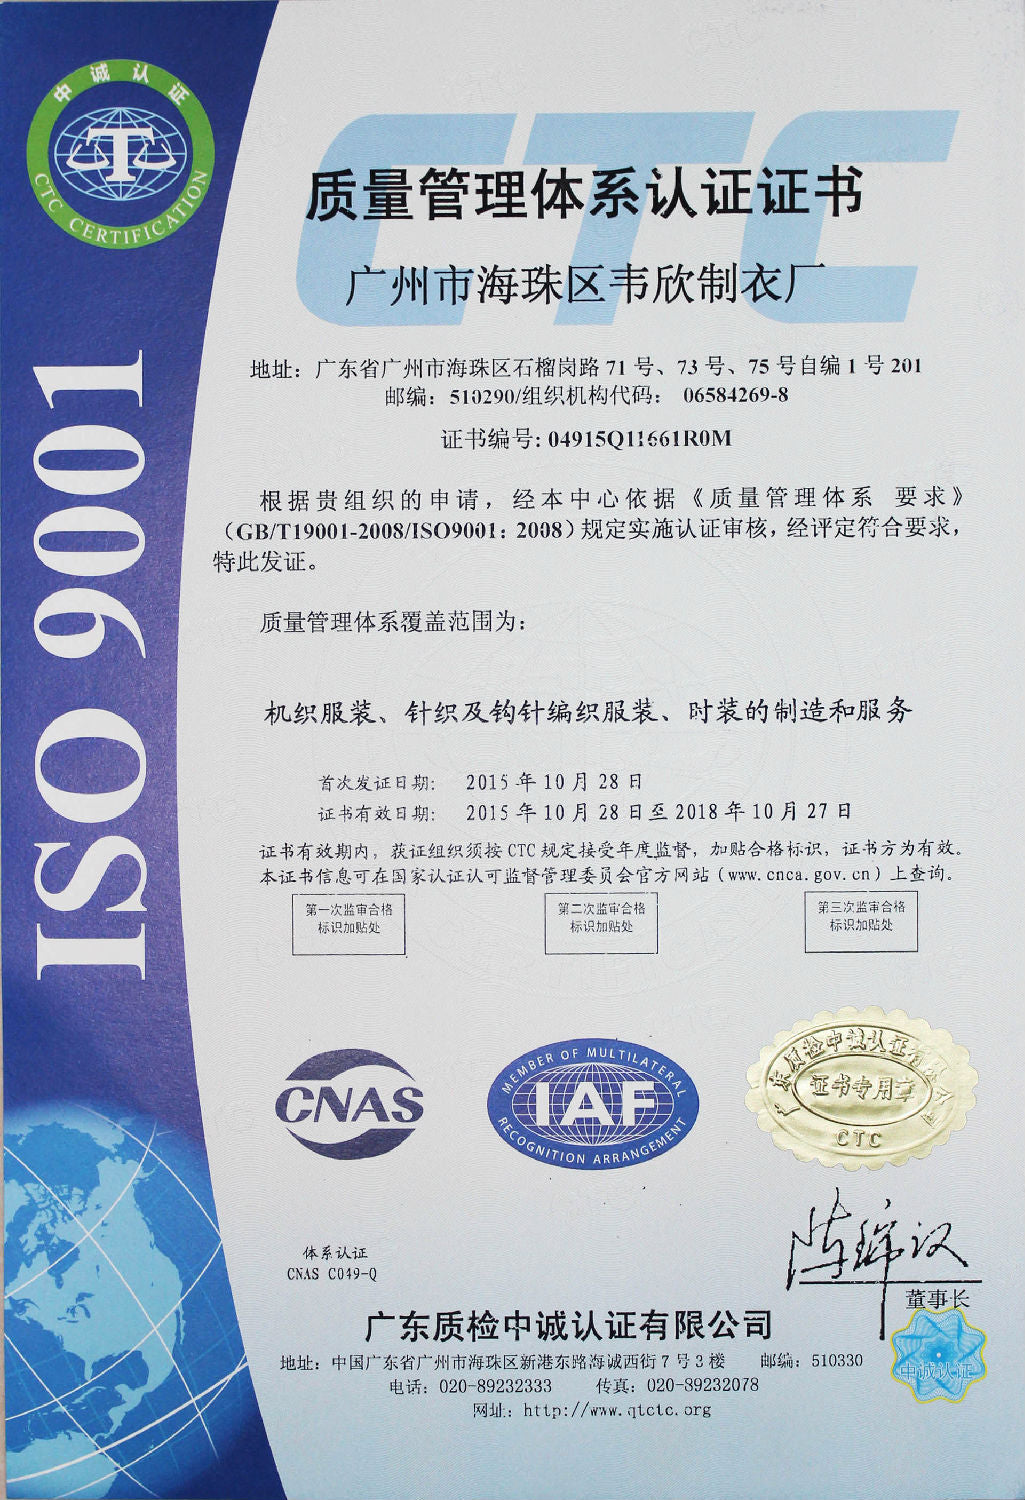 Certificate dj garment factory iso9001 certification certificate of quality management system 1betcityfo Choice Image